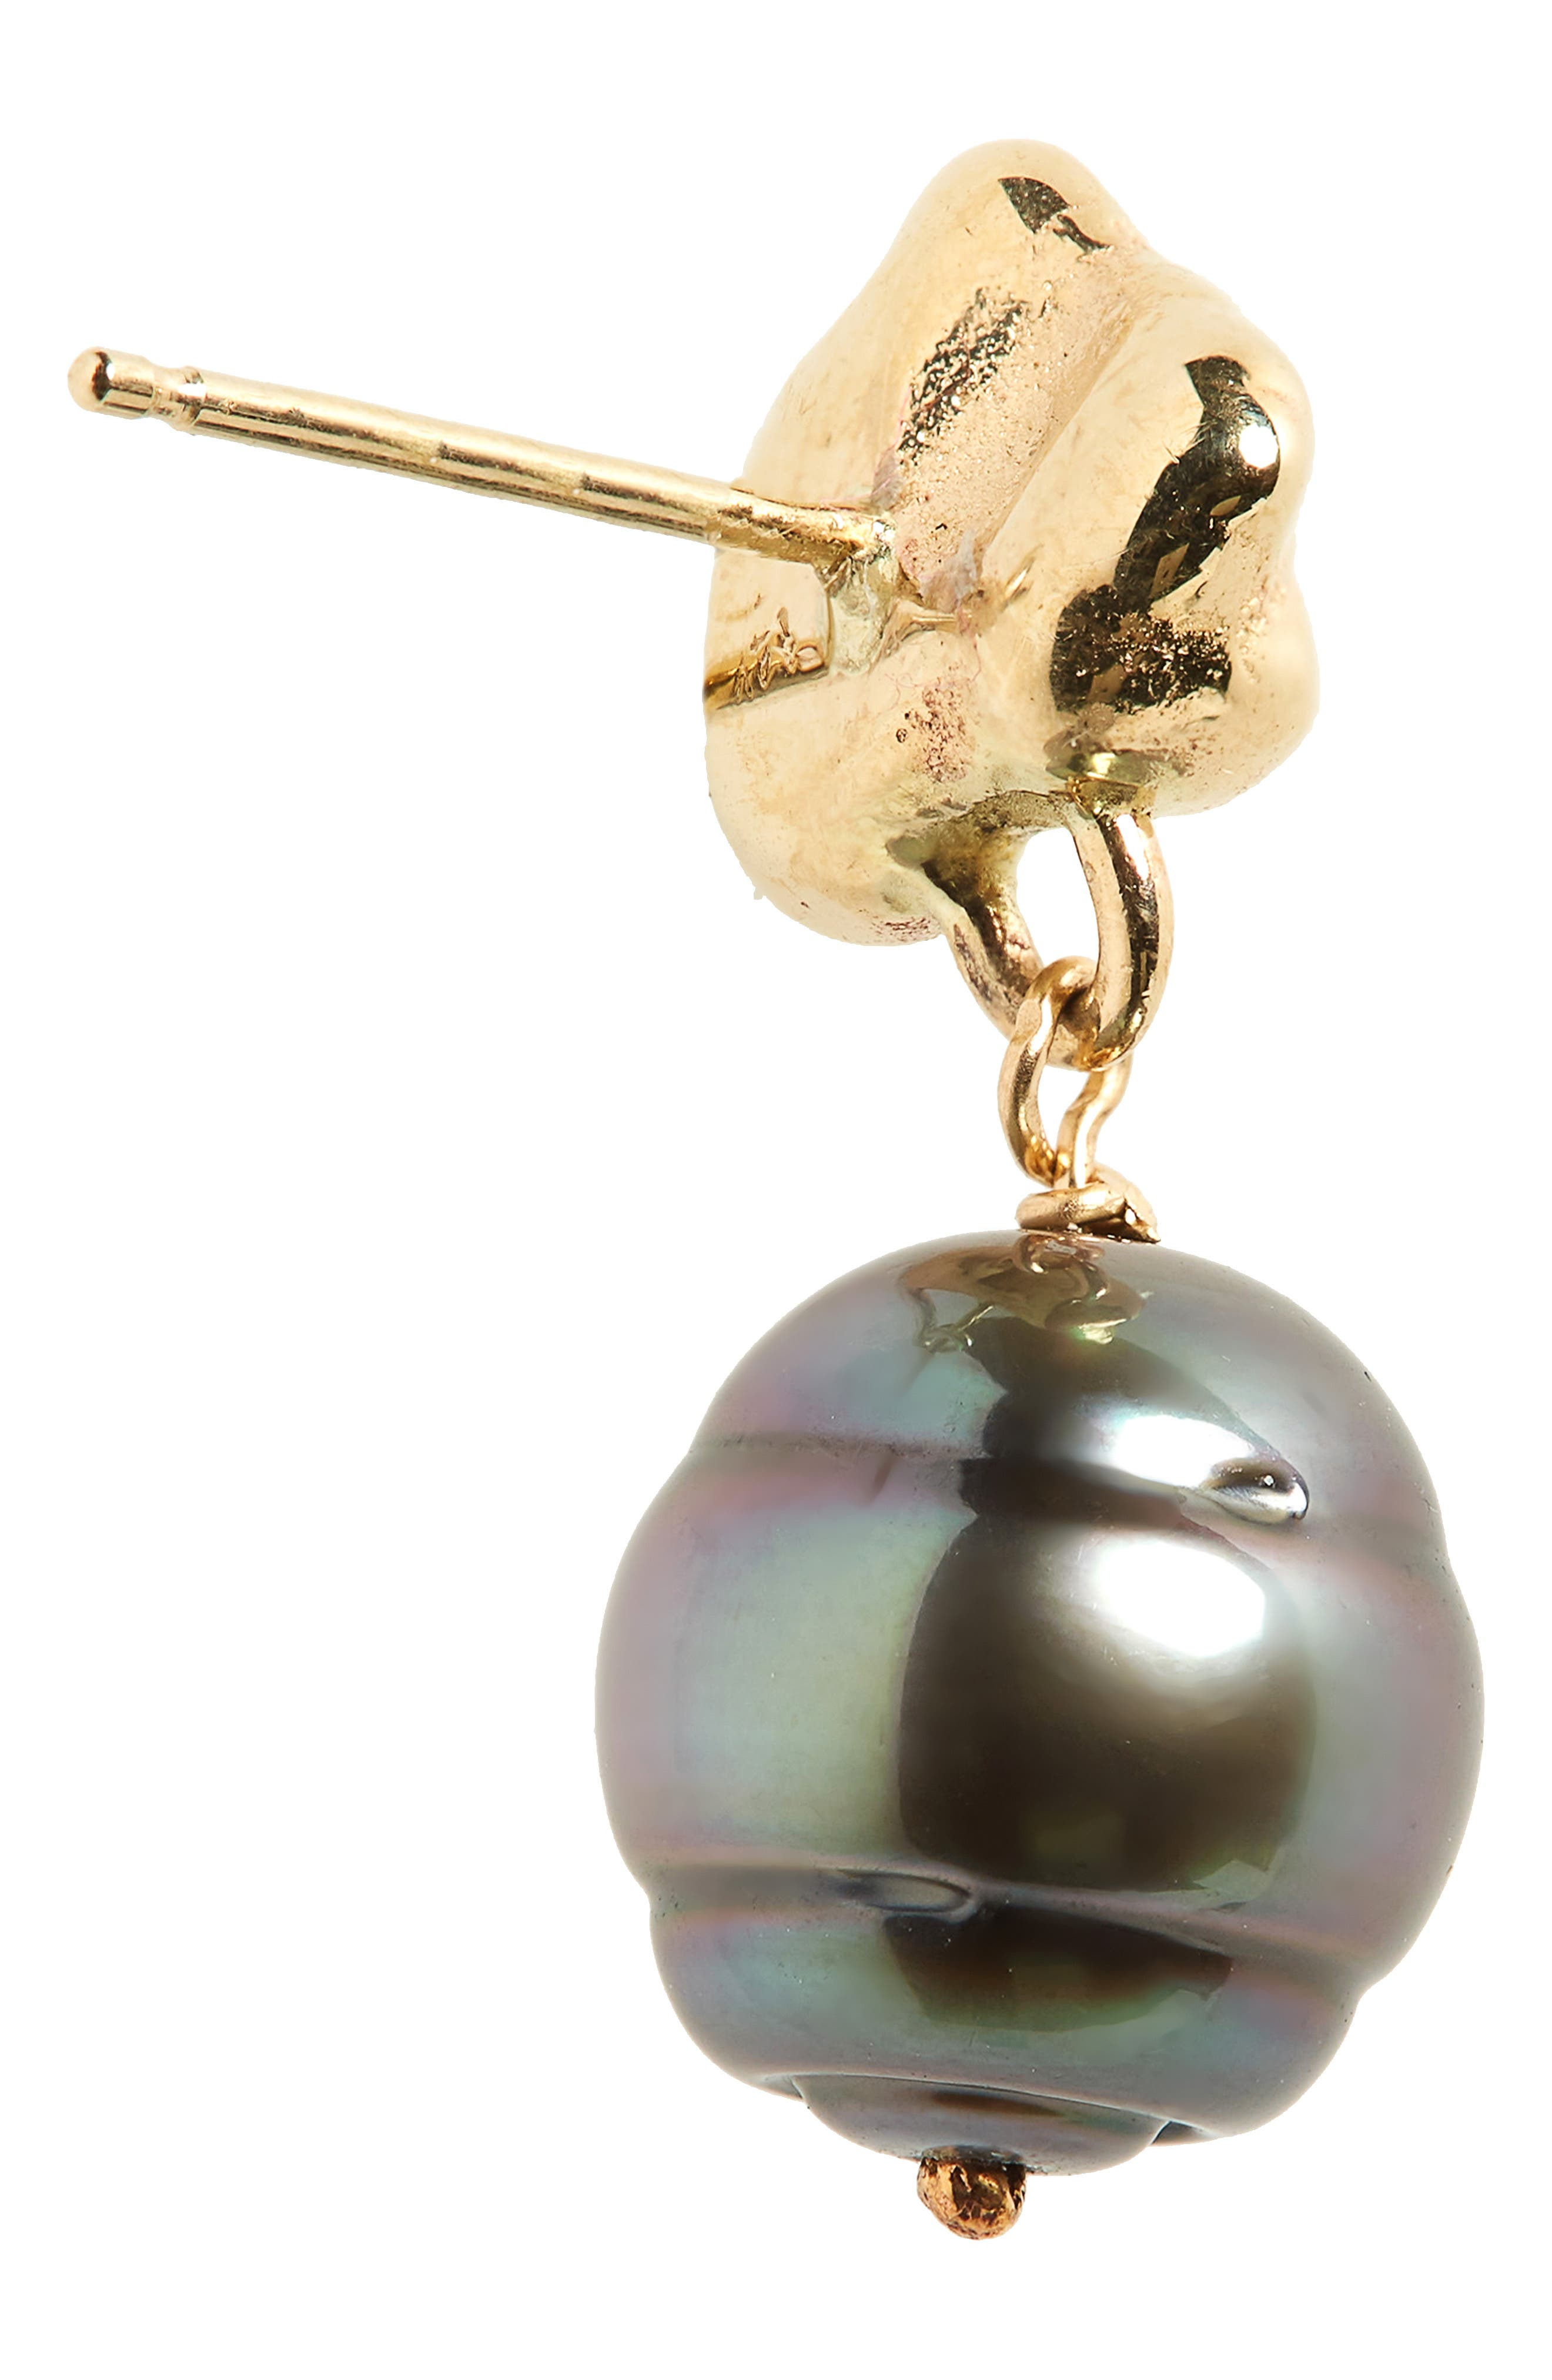 Black Pearl Drop Earrings,                             Alternate thumbnail 4, color,                             Gold/ Black Pearl